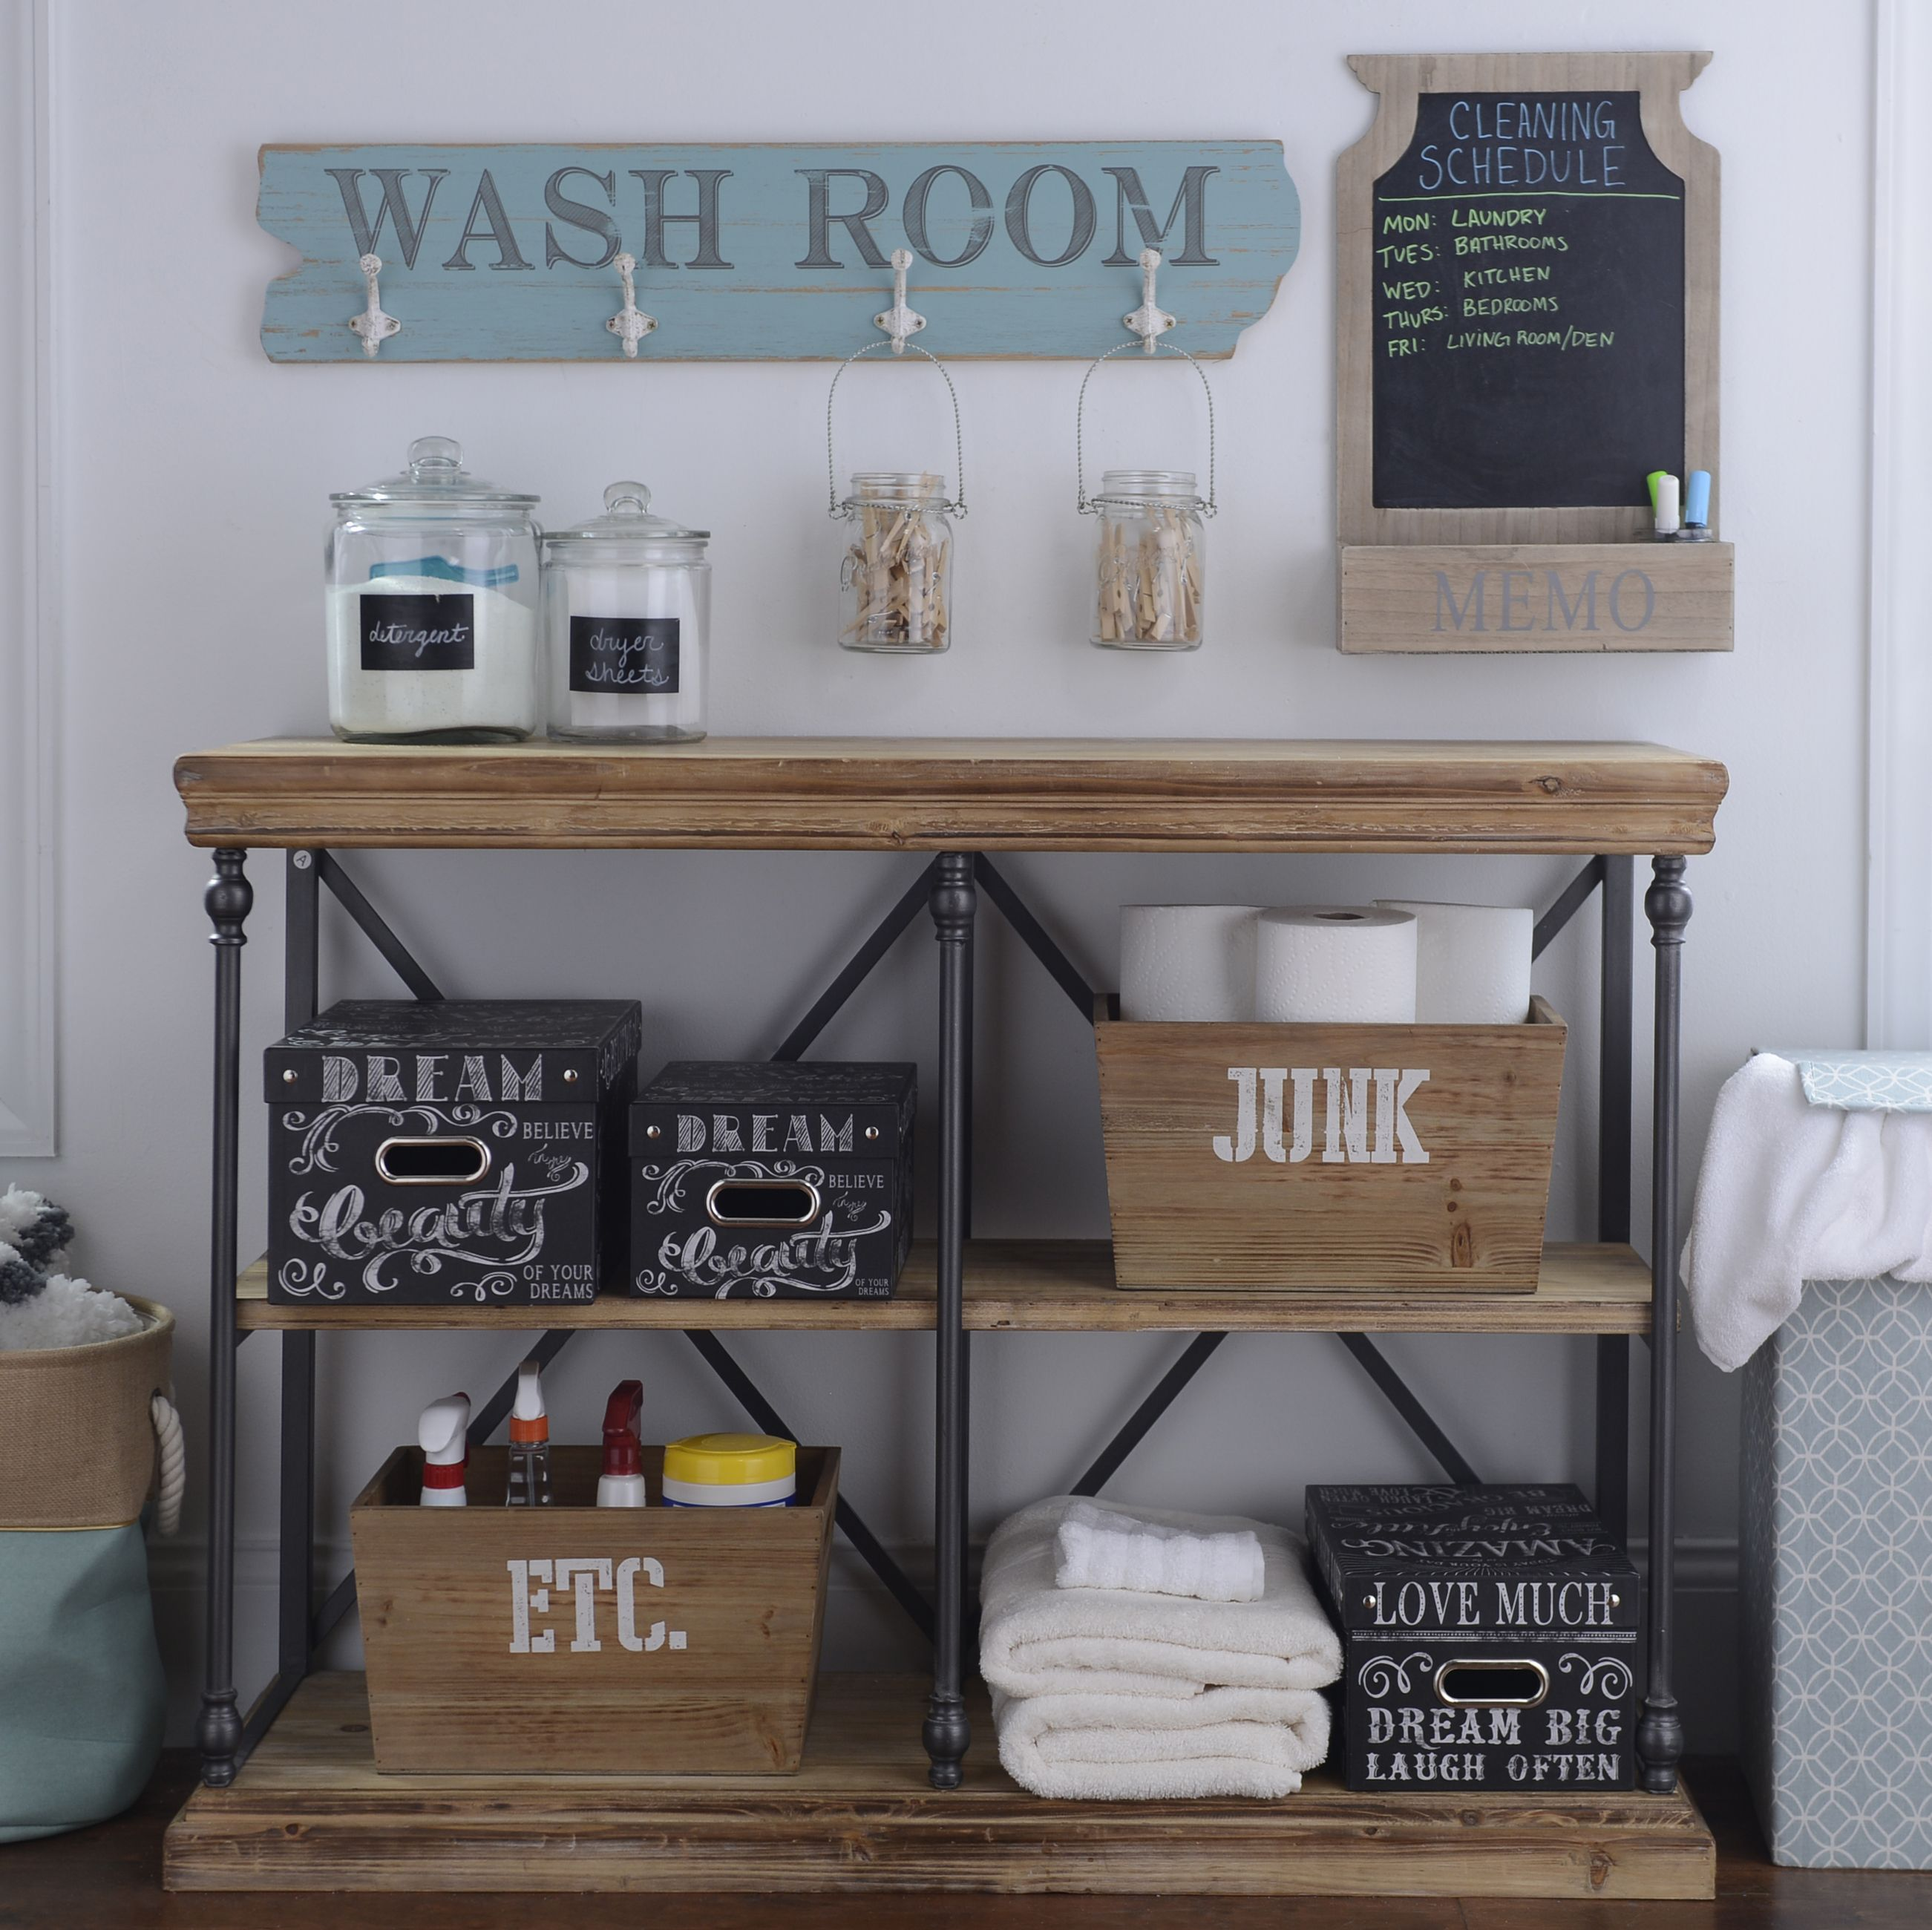 5 Home Organization Tips For Fall